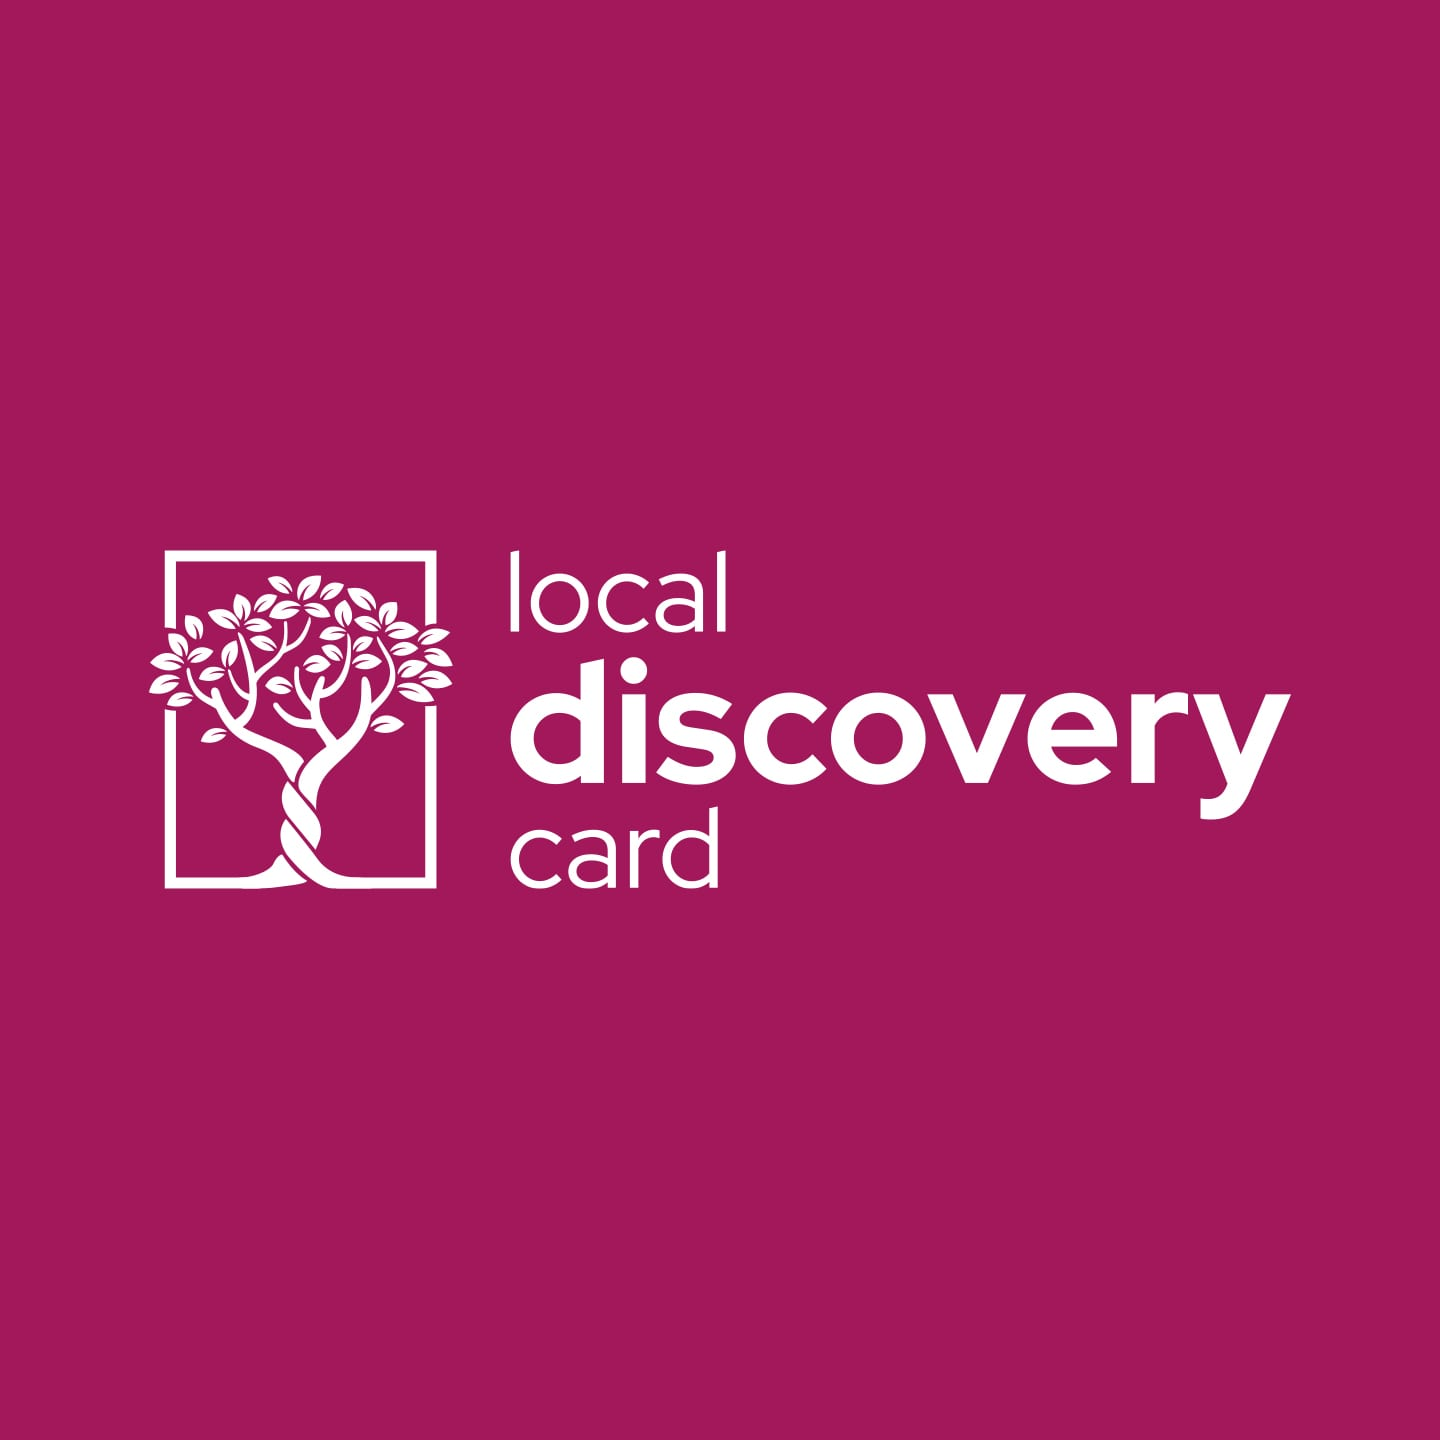 local discovery card